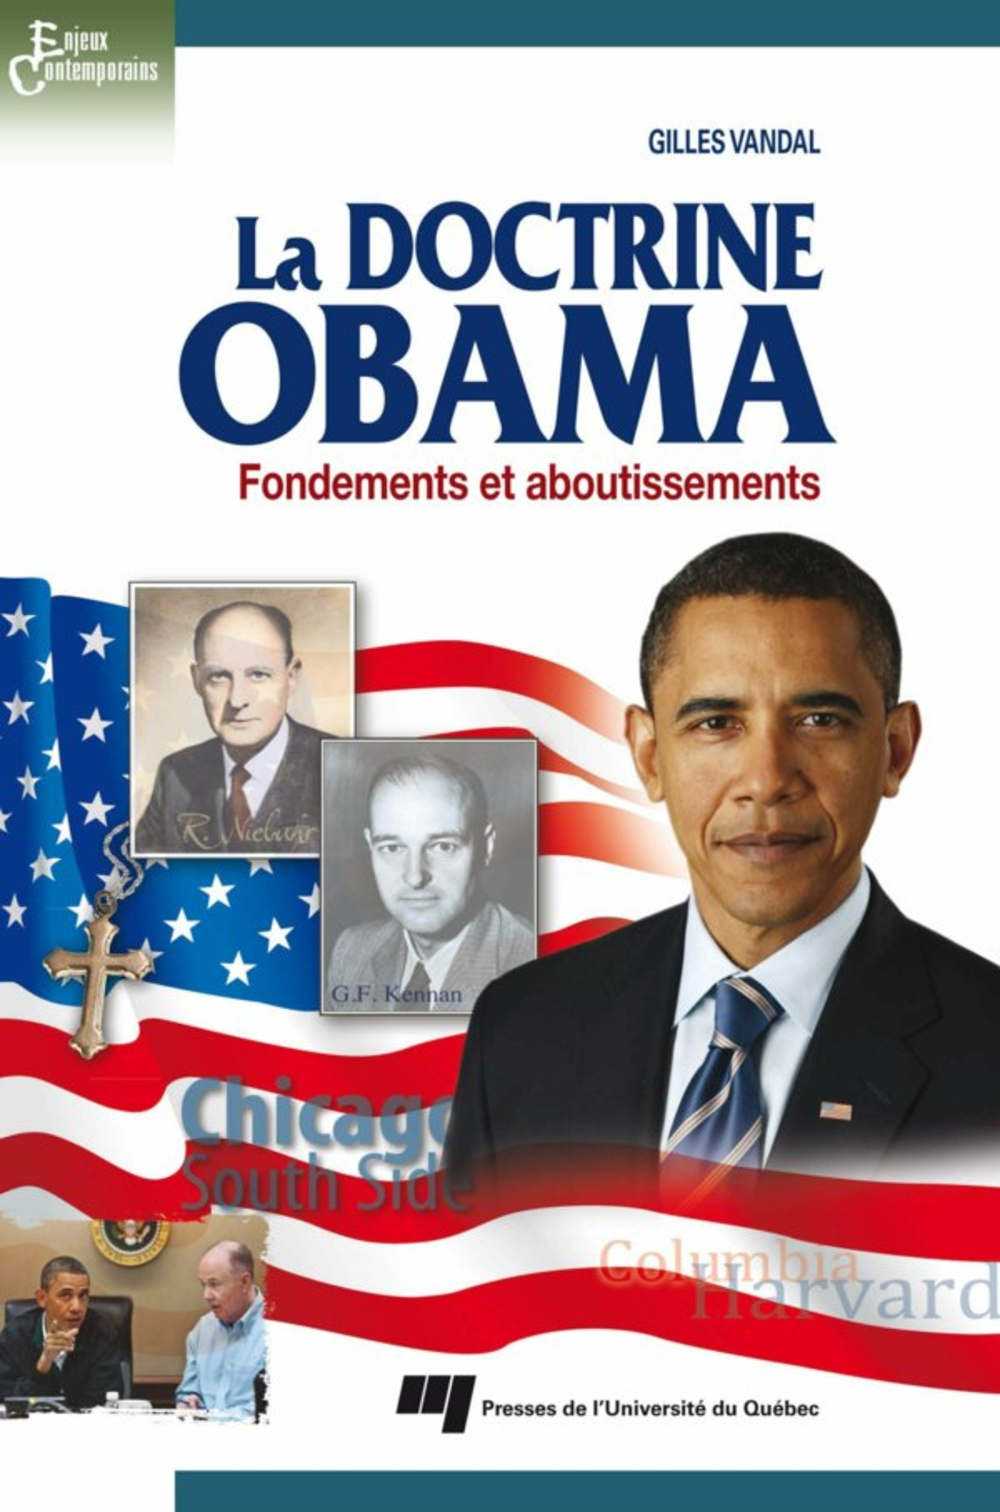 La doctrine Obama